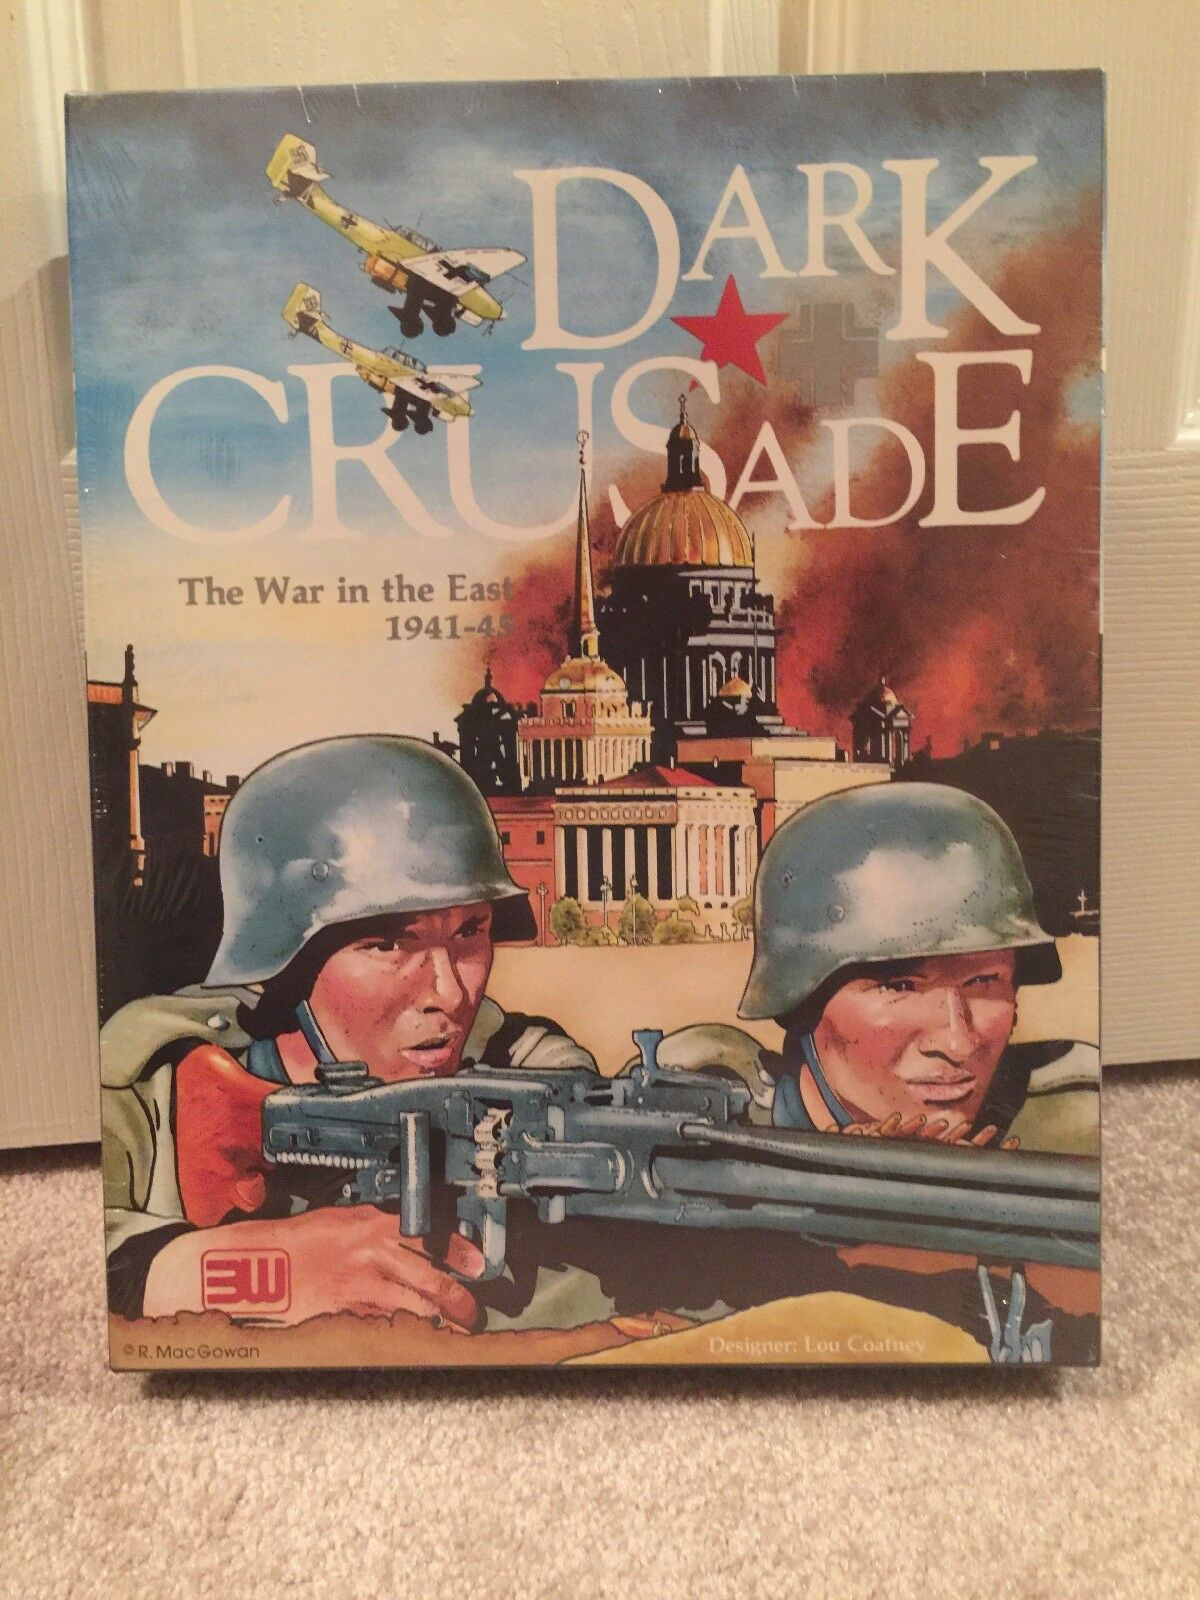 Dark Crusade The War in the East 1941-45 3W Unpunched